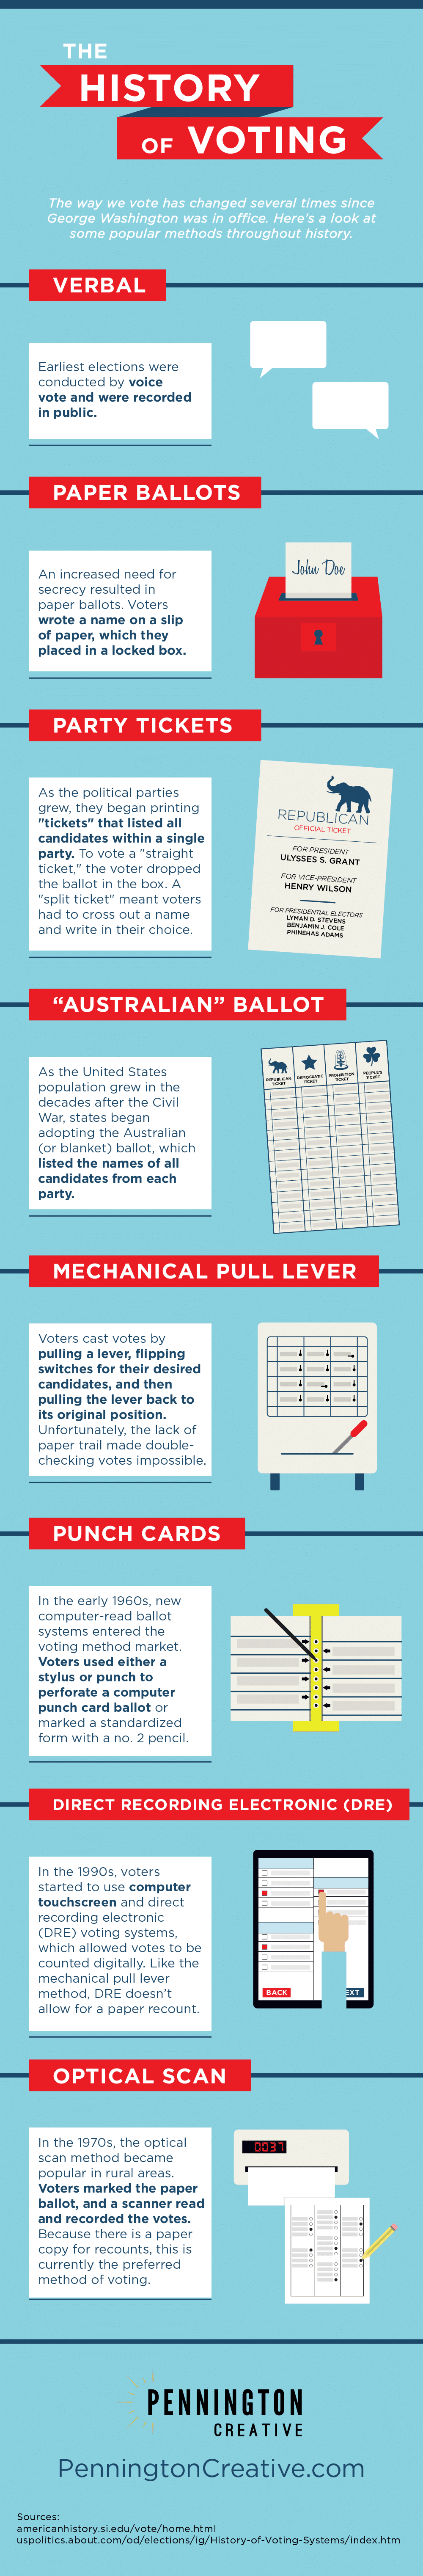 The History of Voting Infographic